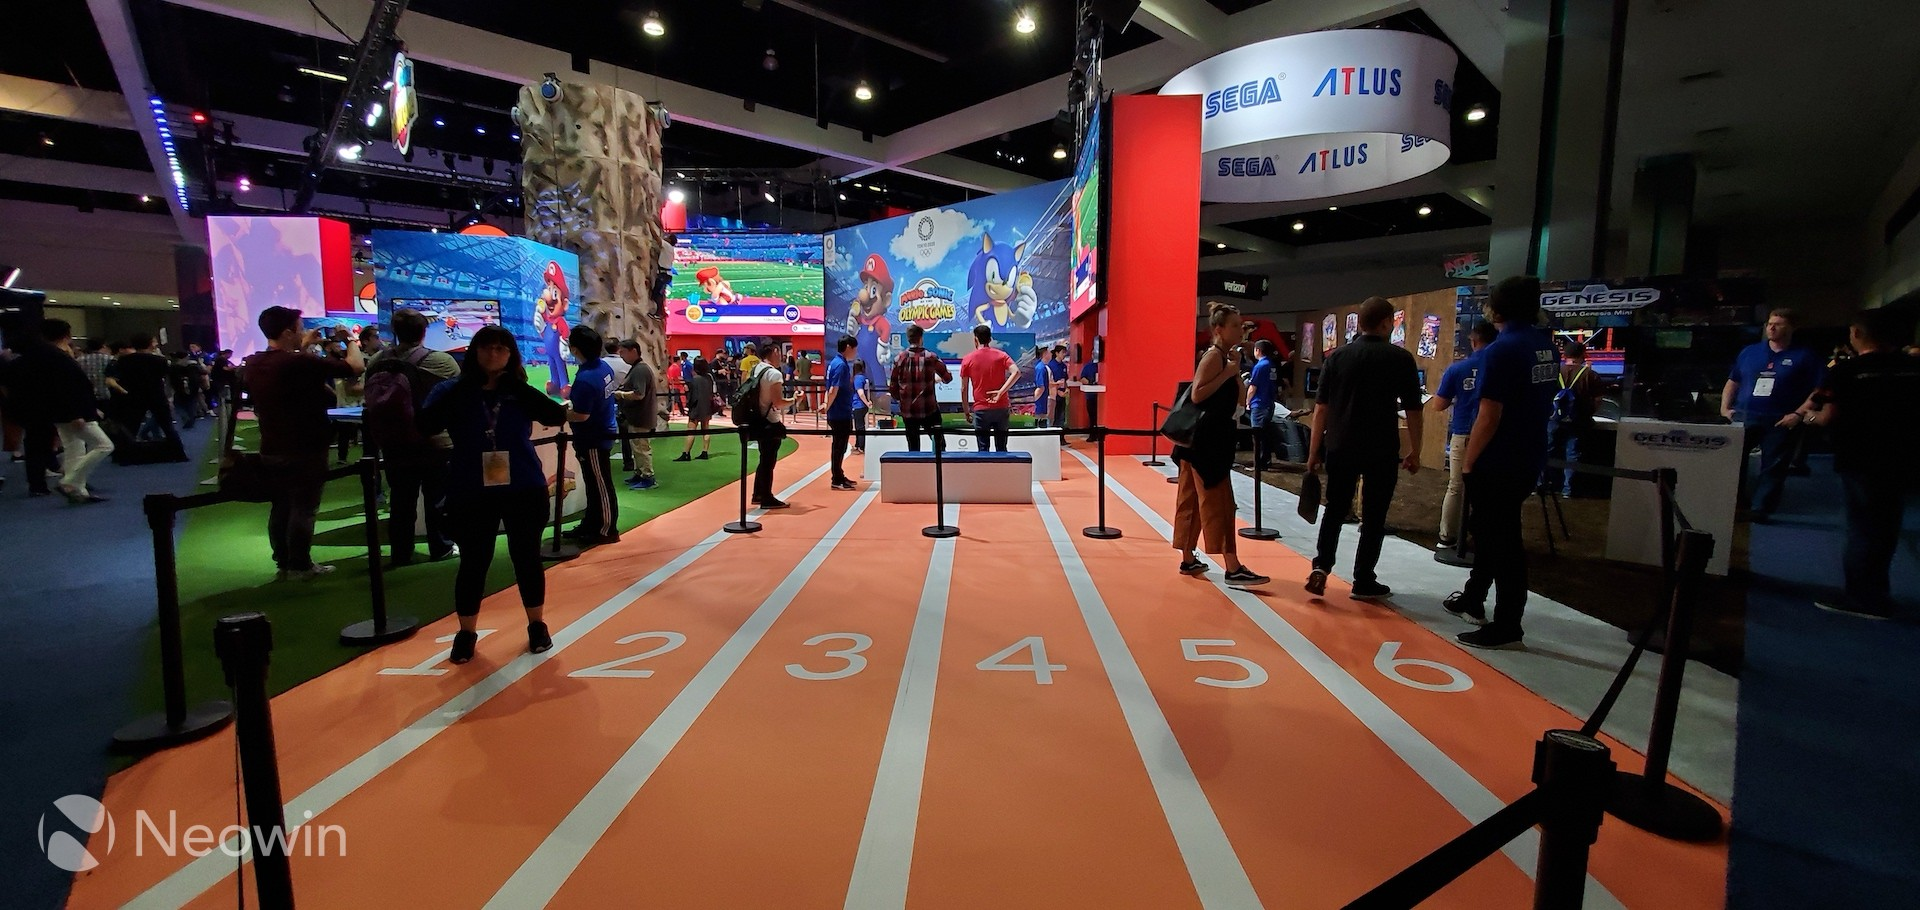 A tour of Nintendo's booth at E3 2019 - Neowin